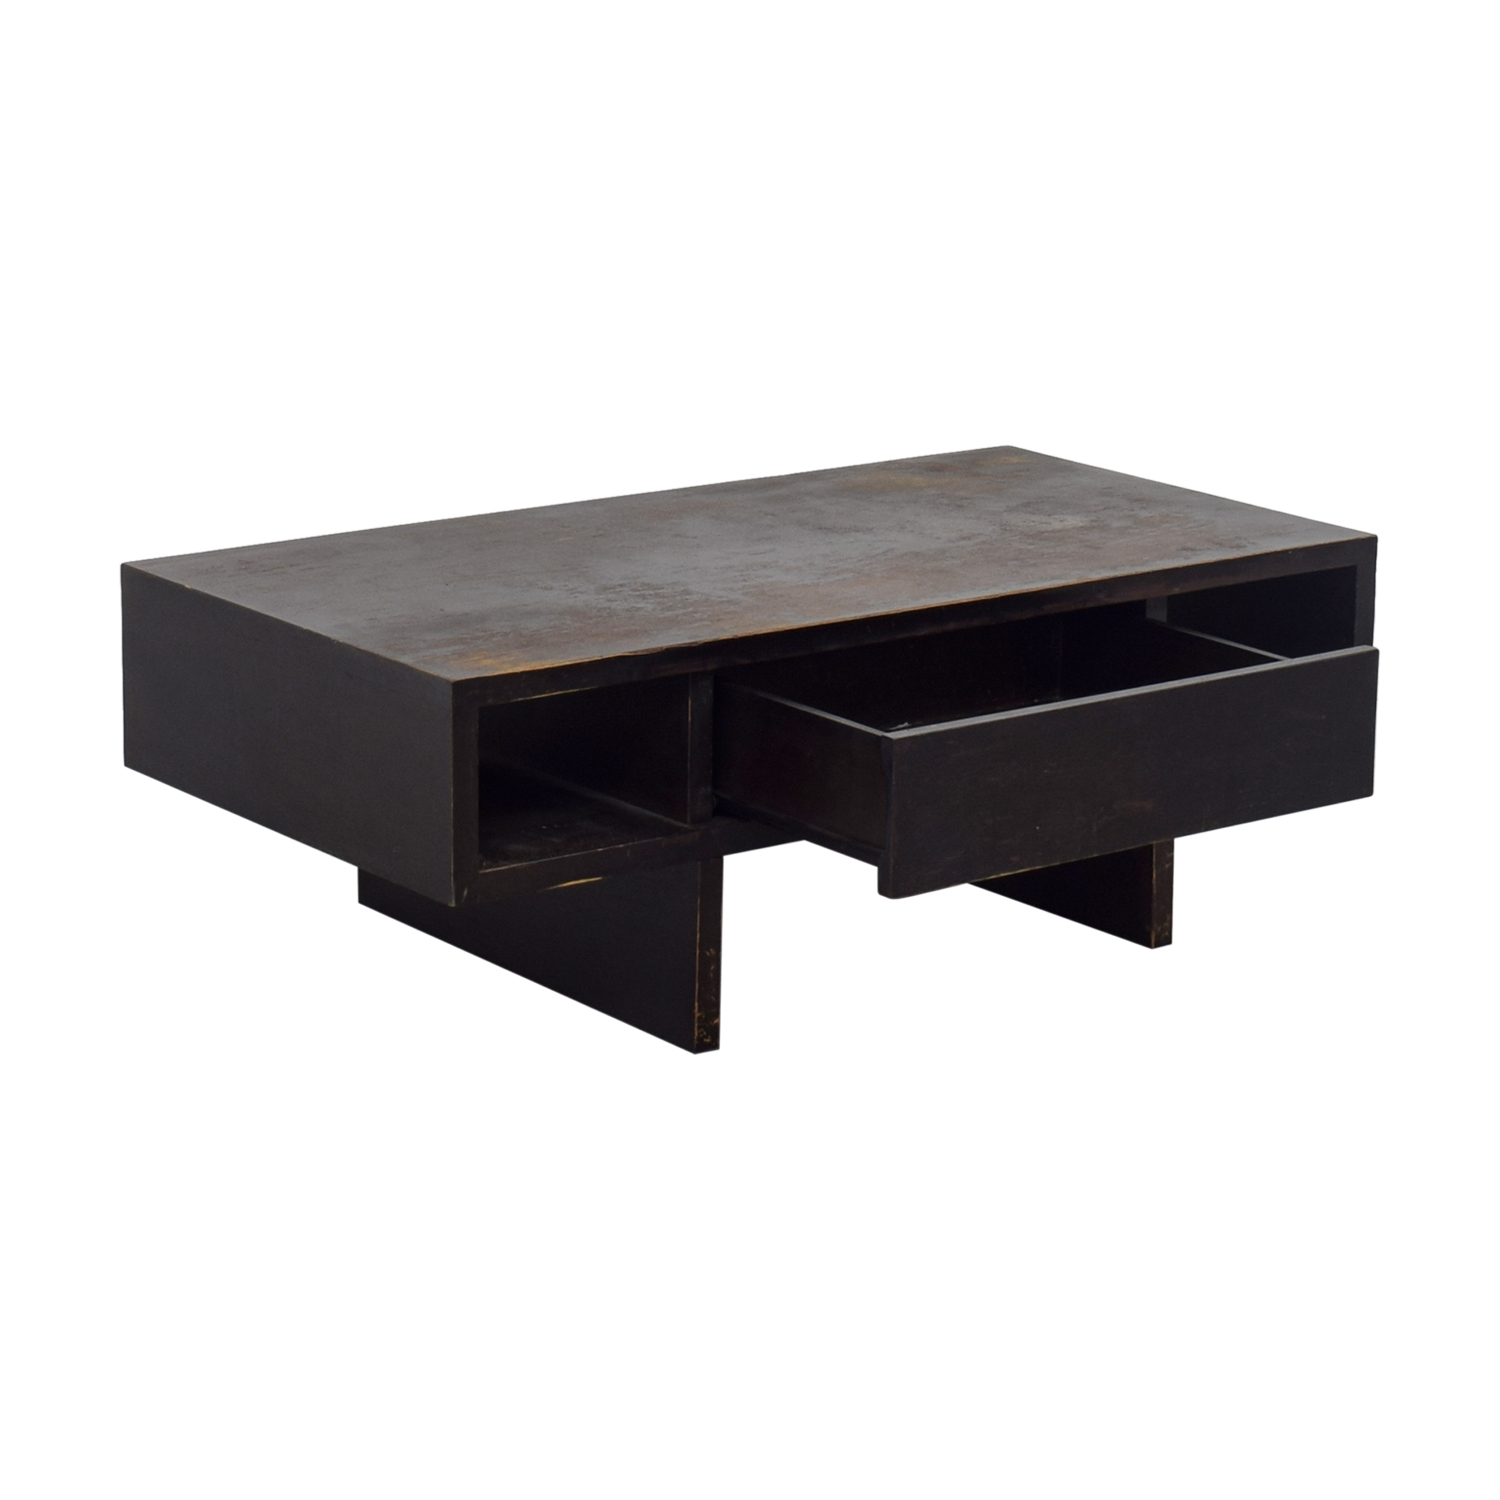 Phenomenal 80 Off West Elm West Elm Distressed Black Storage Coffee Table Tables Dailytribune Chair Design For Home Dailytribuneorg